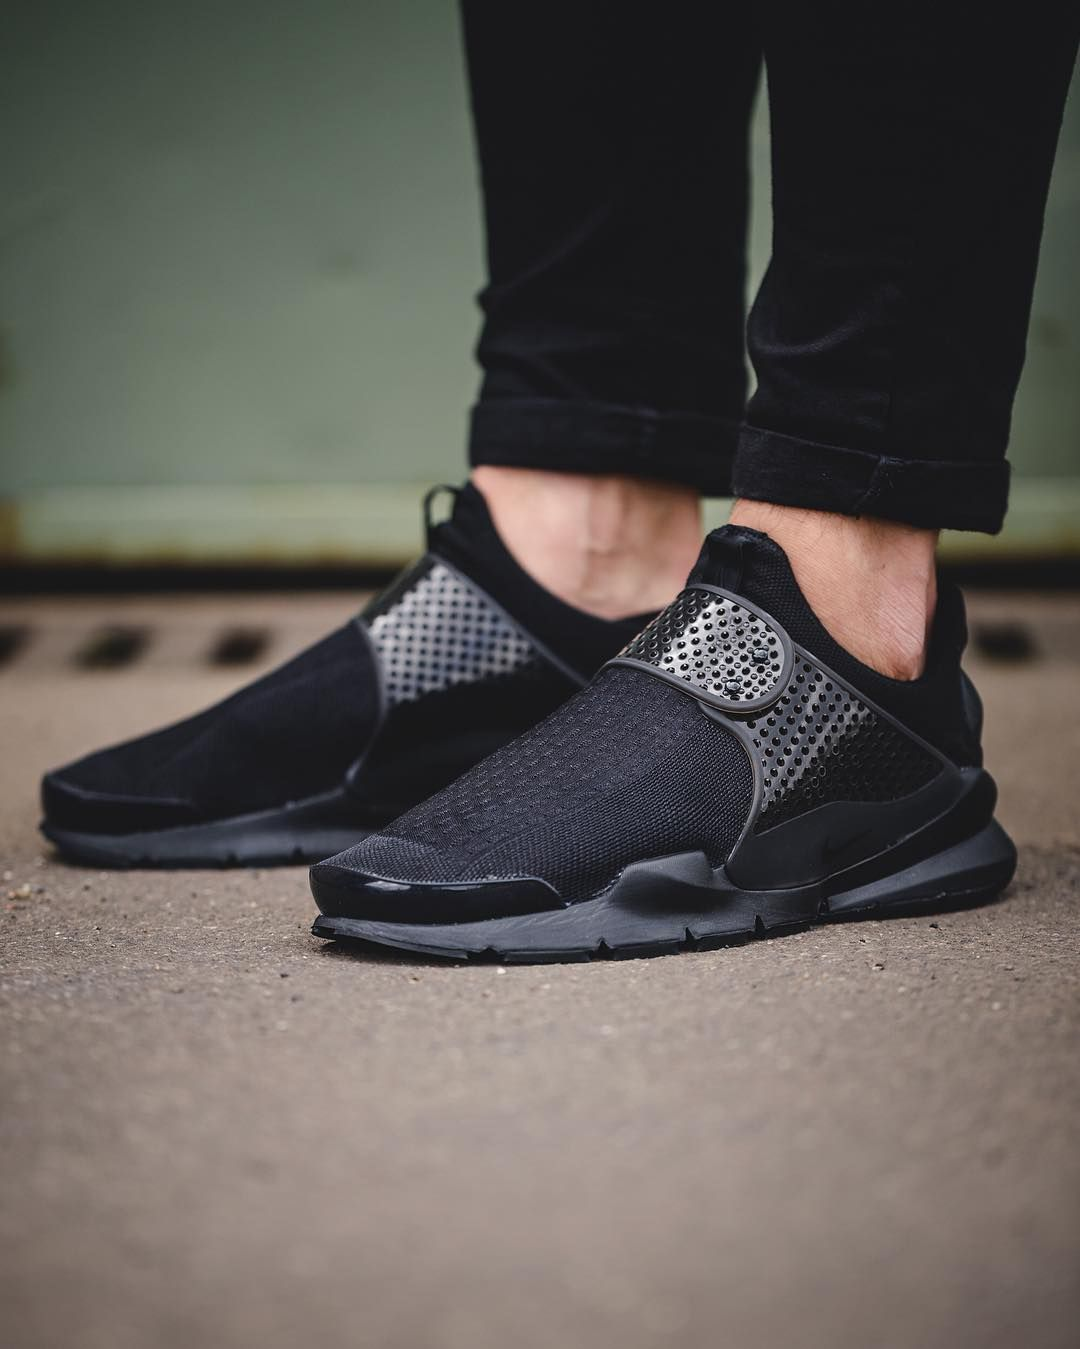 7dcf1fedea17 Nike Sock Dart Triple Black  sneakers  sneakernews